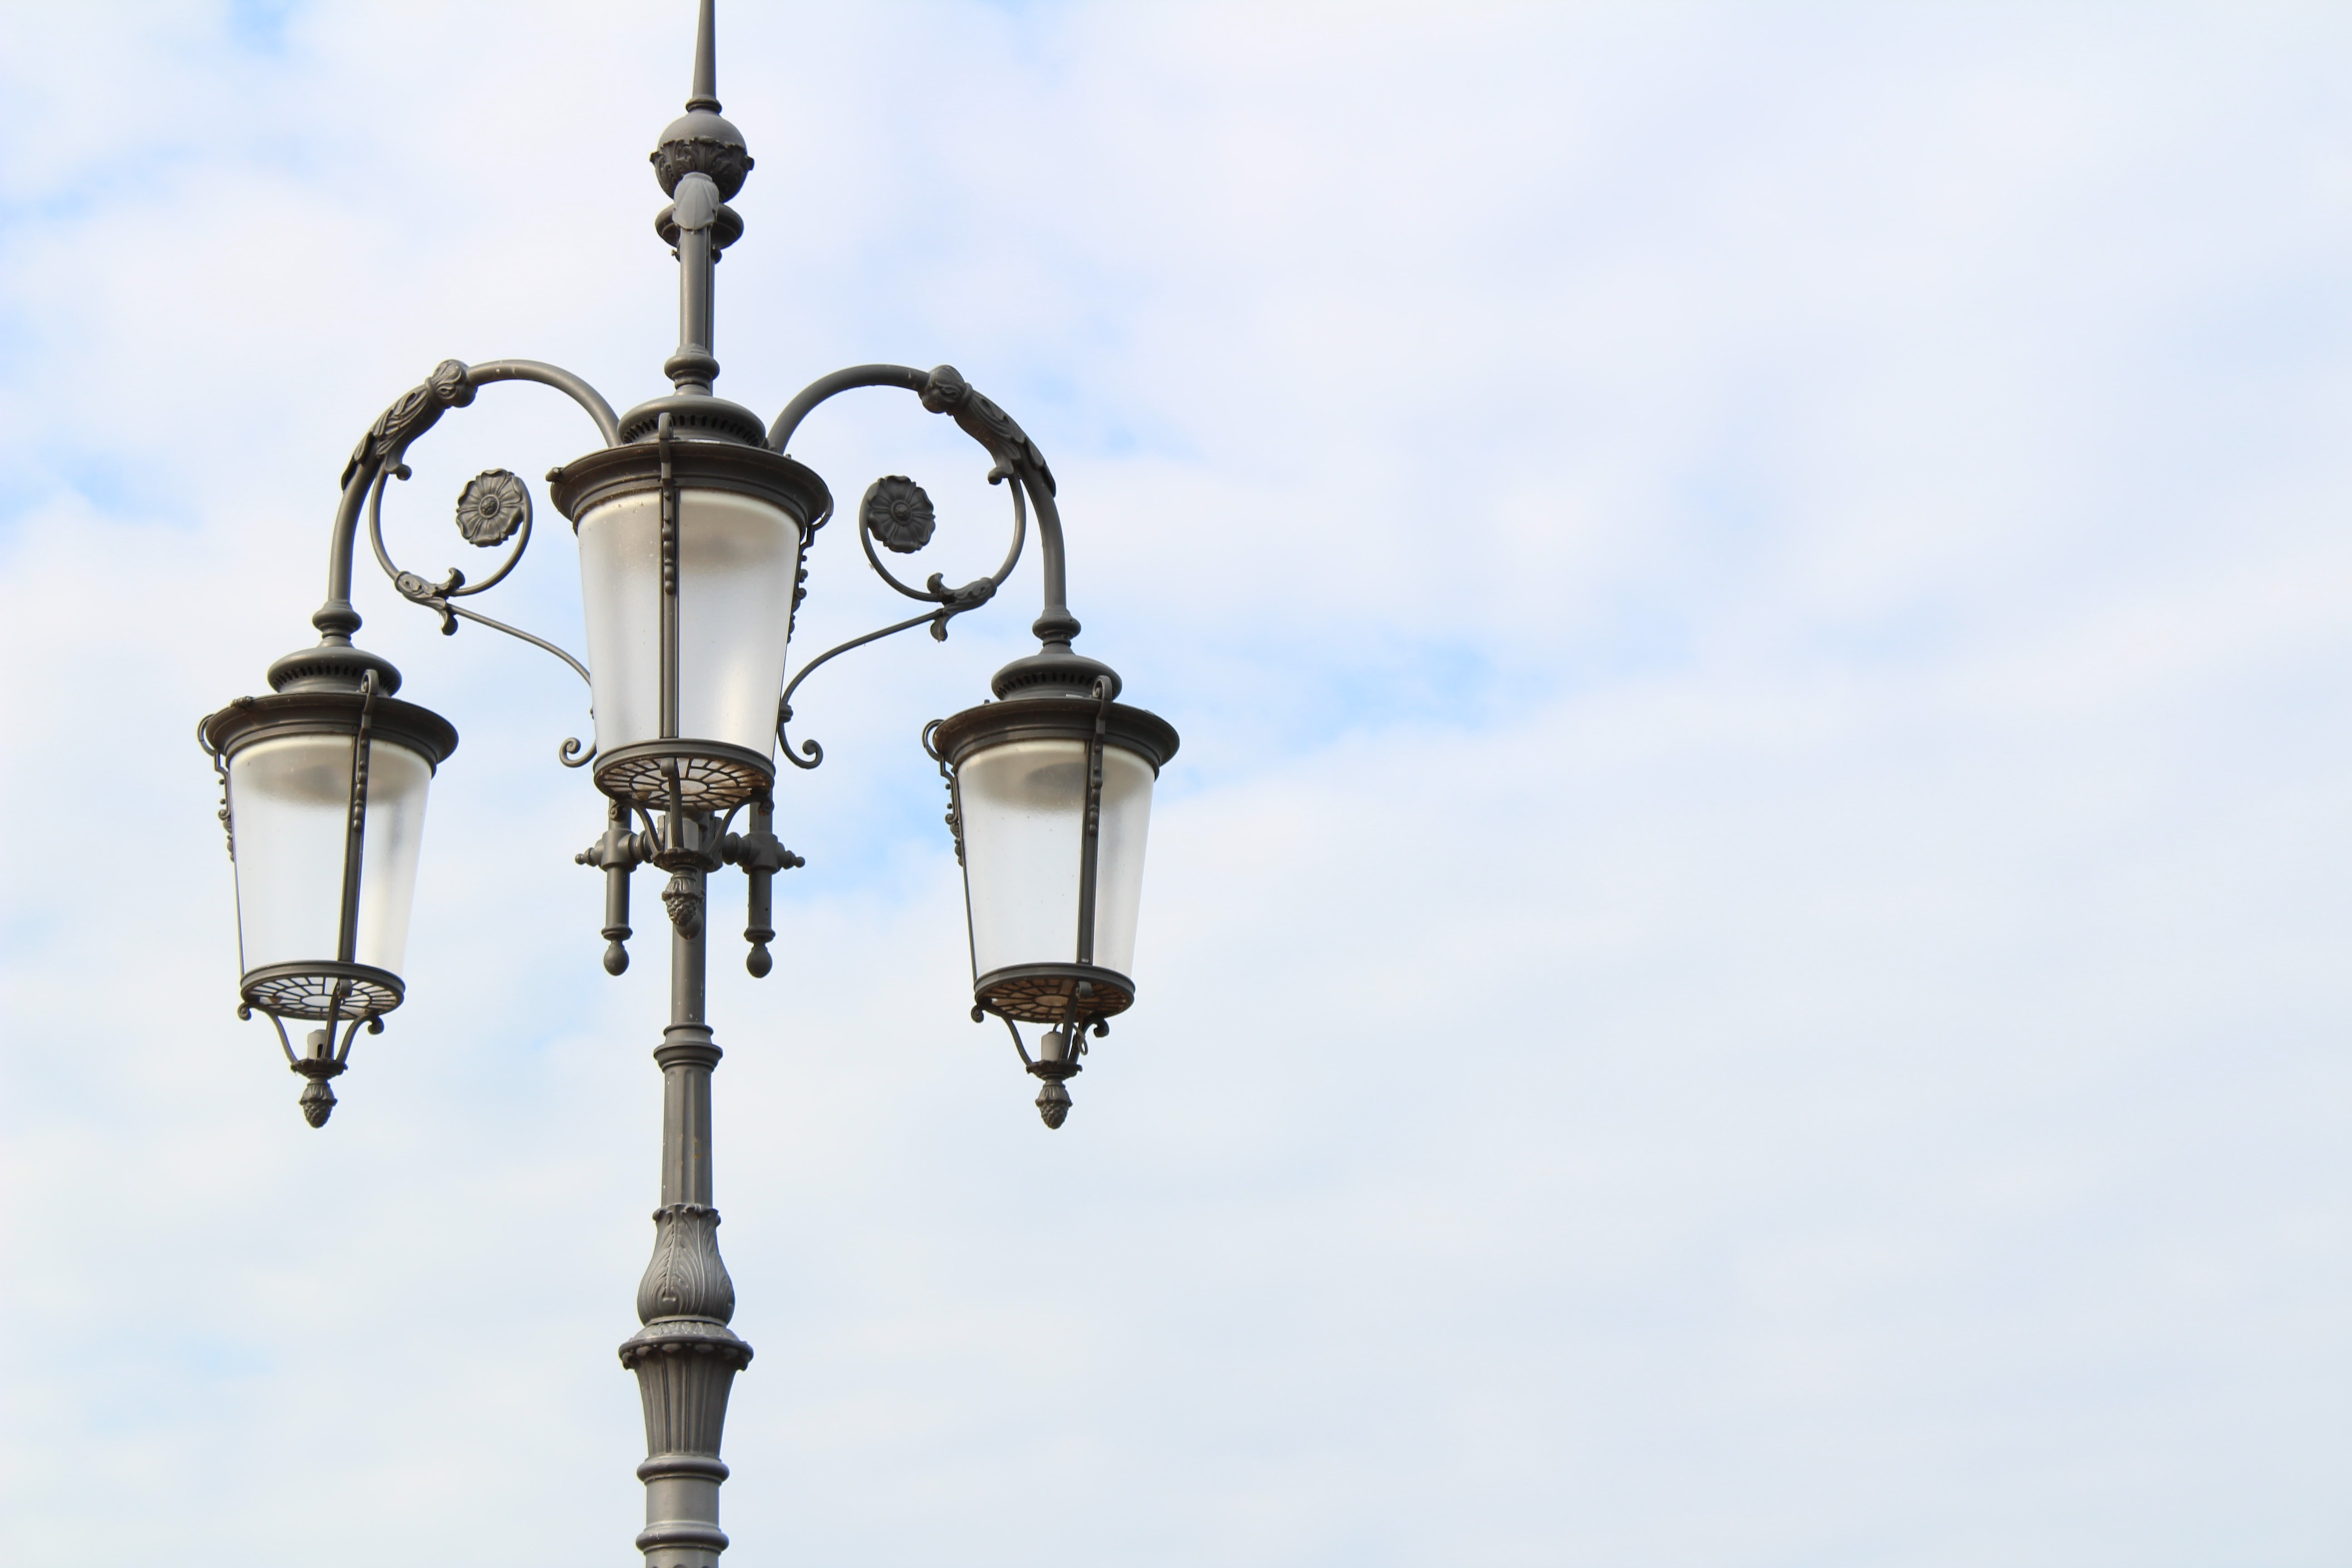 Black lamppost with ornate flower designs and three lanterns against a cloudy sky